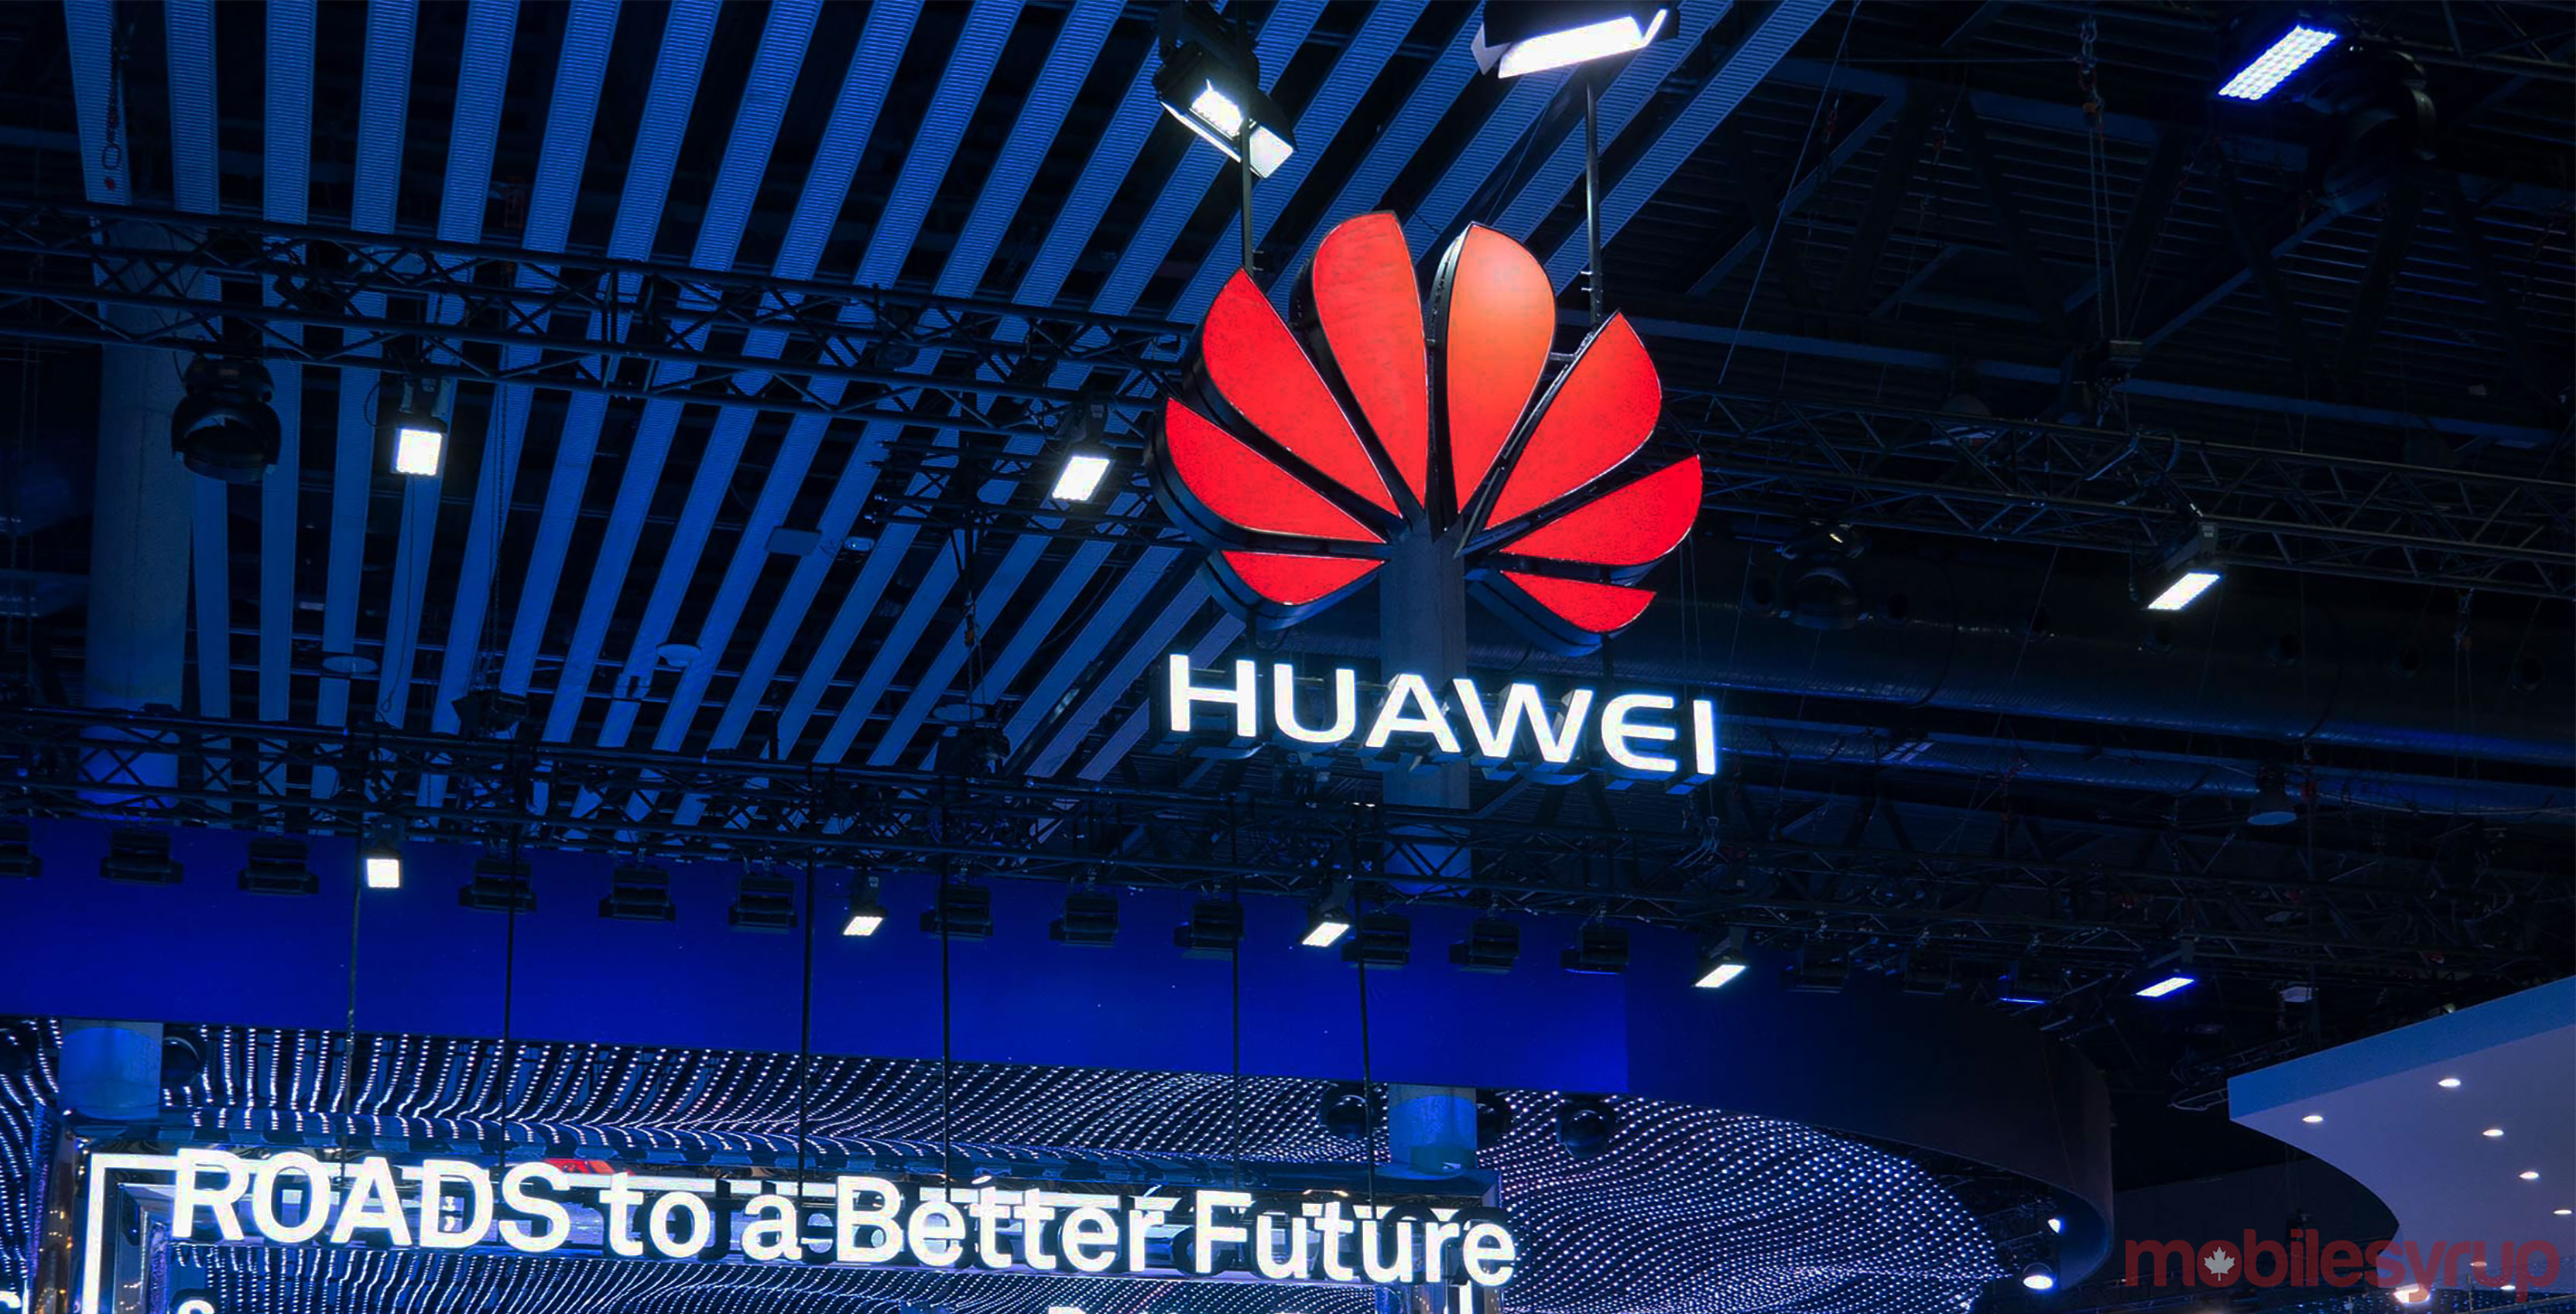 Bell, Telus has been using Huawei to deploy fibre-optic